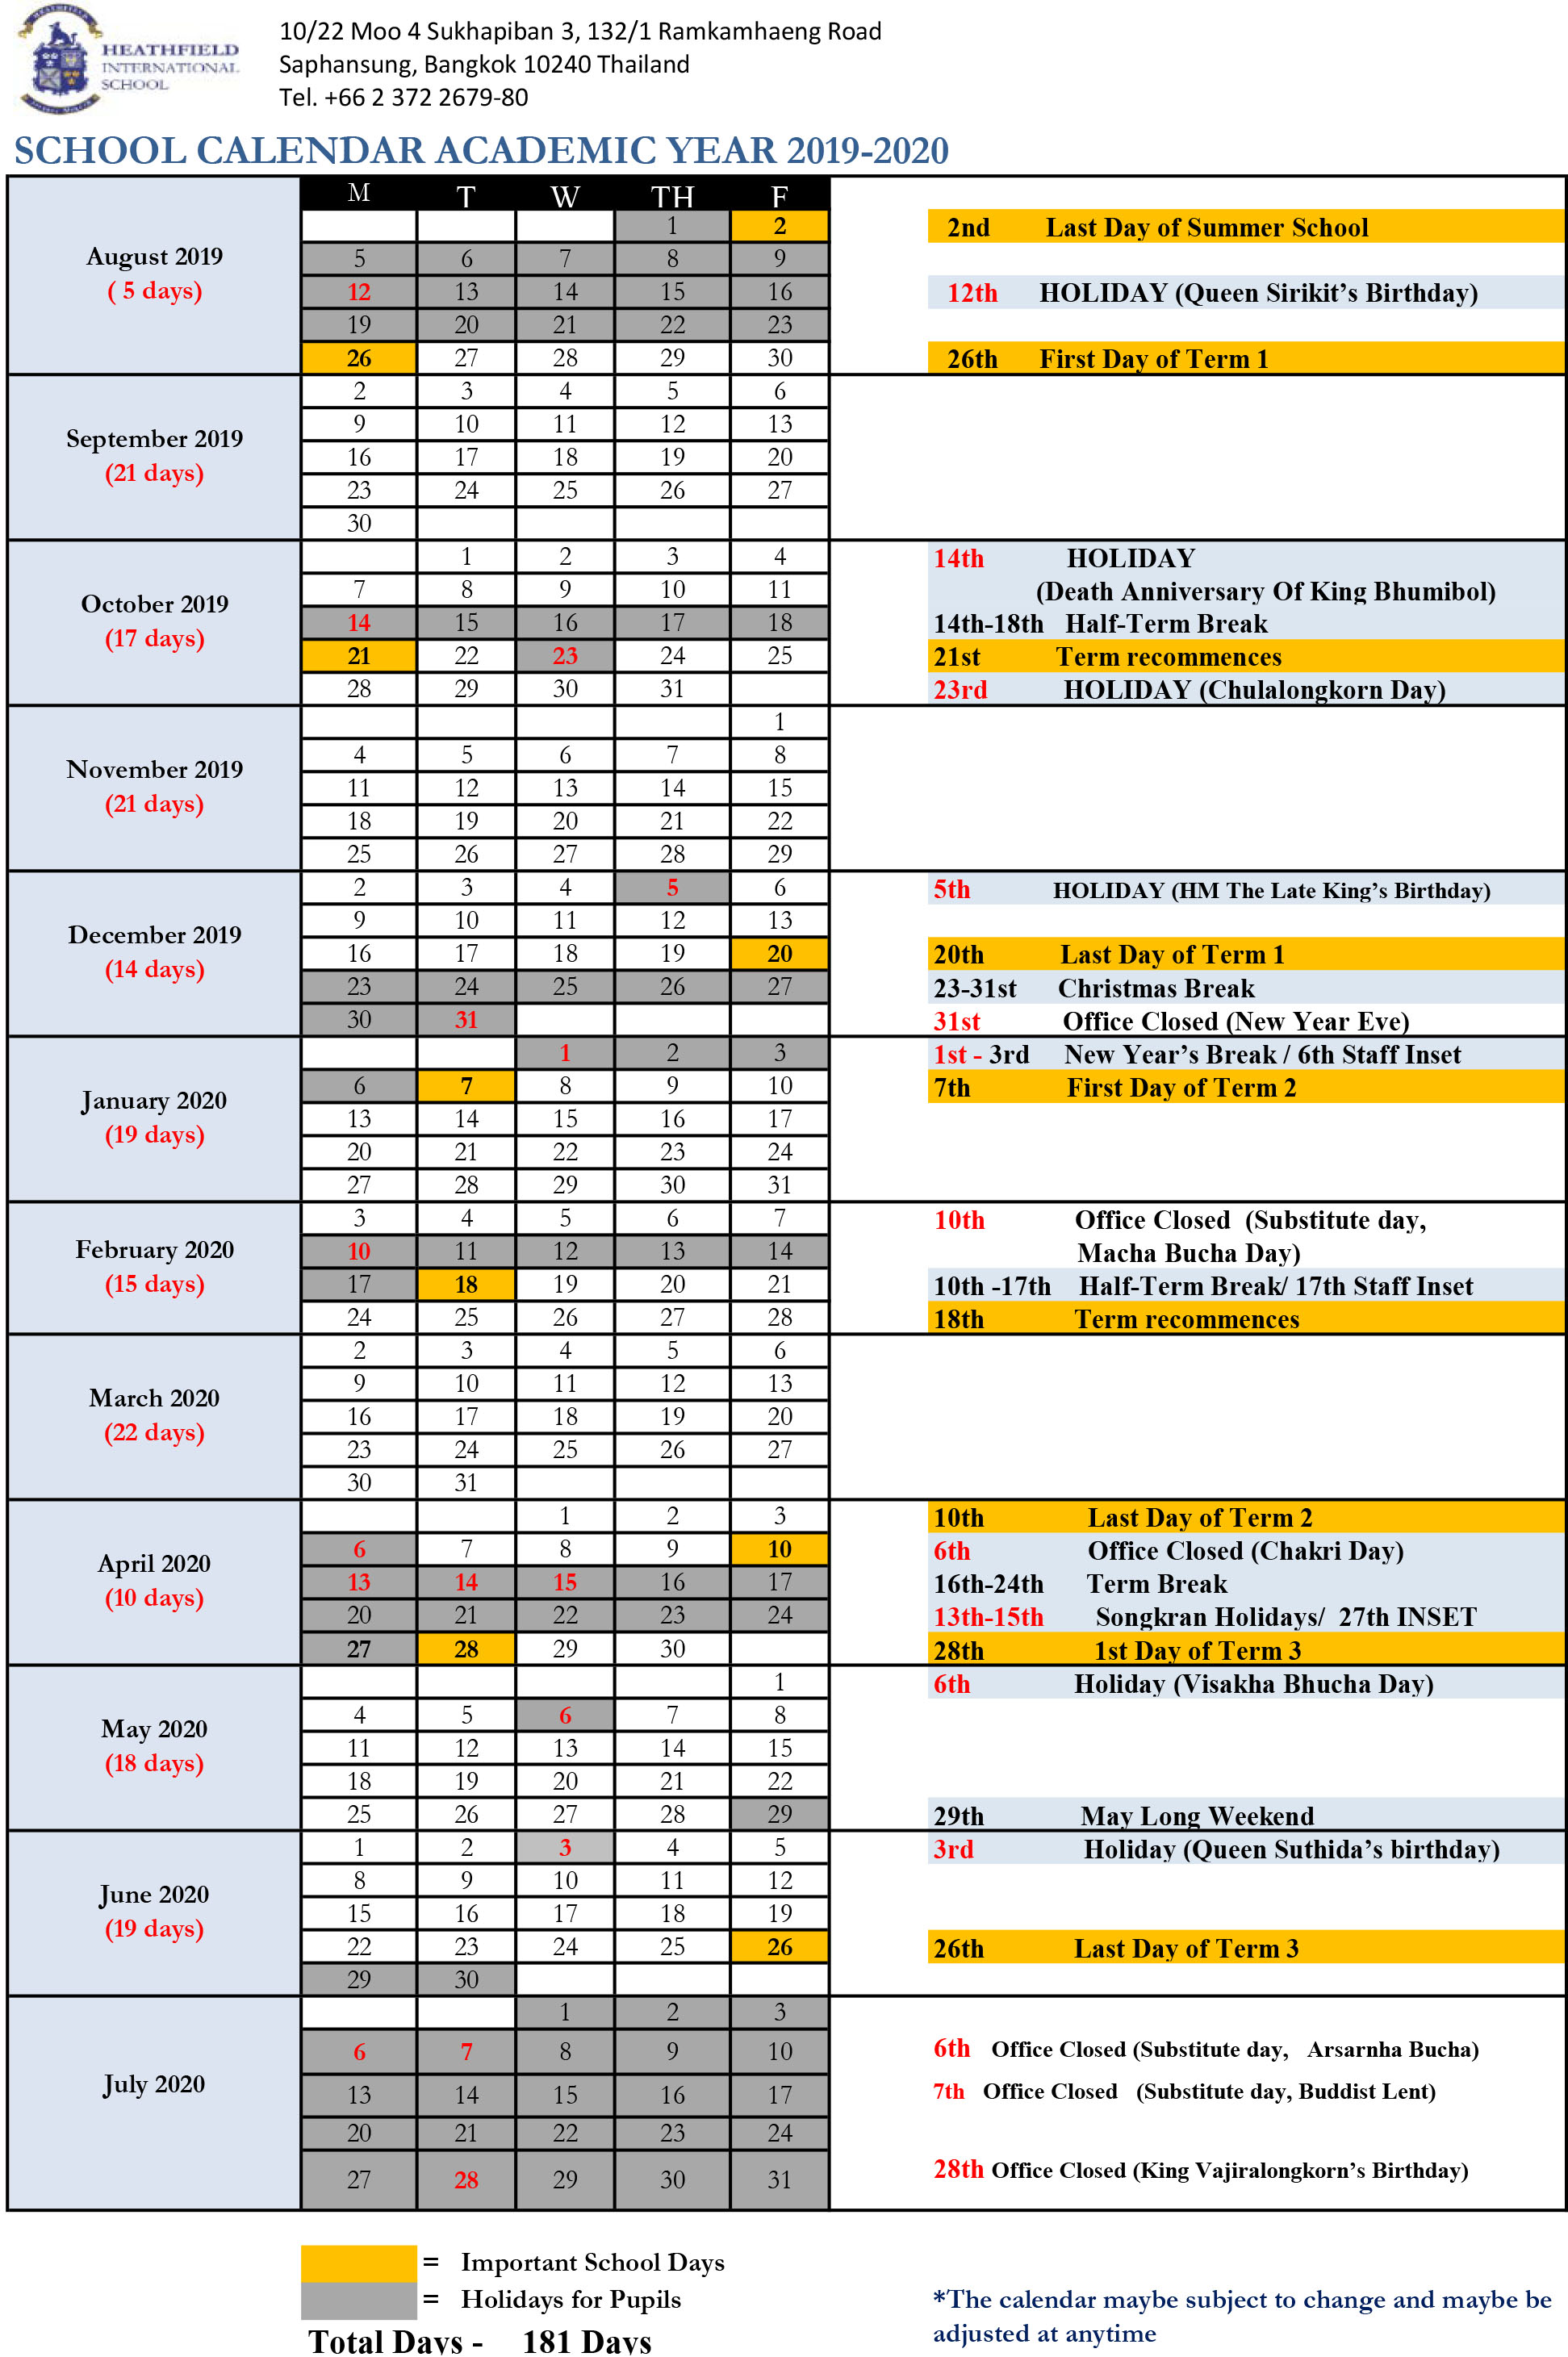 School Calendar 2019 2020 Revised May 19